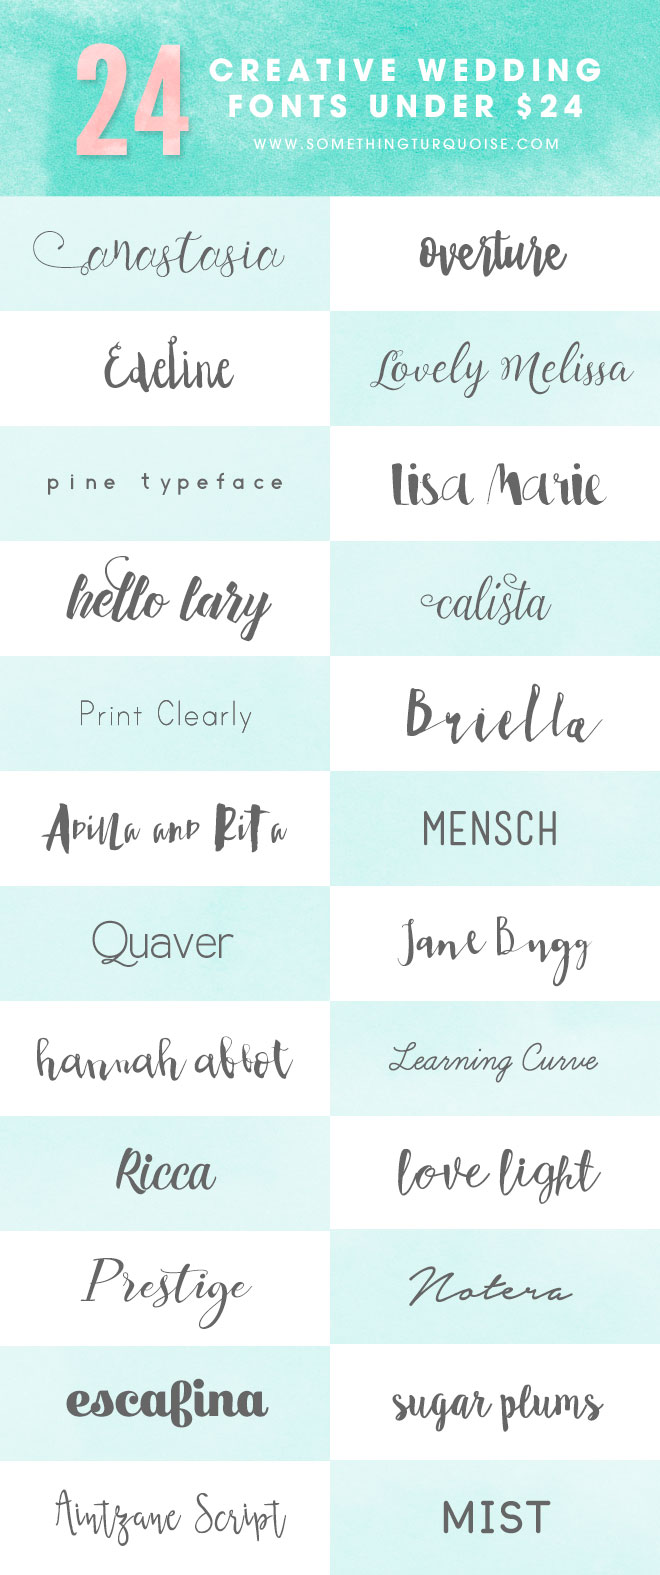 Check out these 24 super cute fonts for under $24  - some are even free!